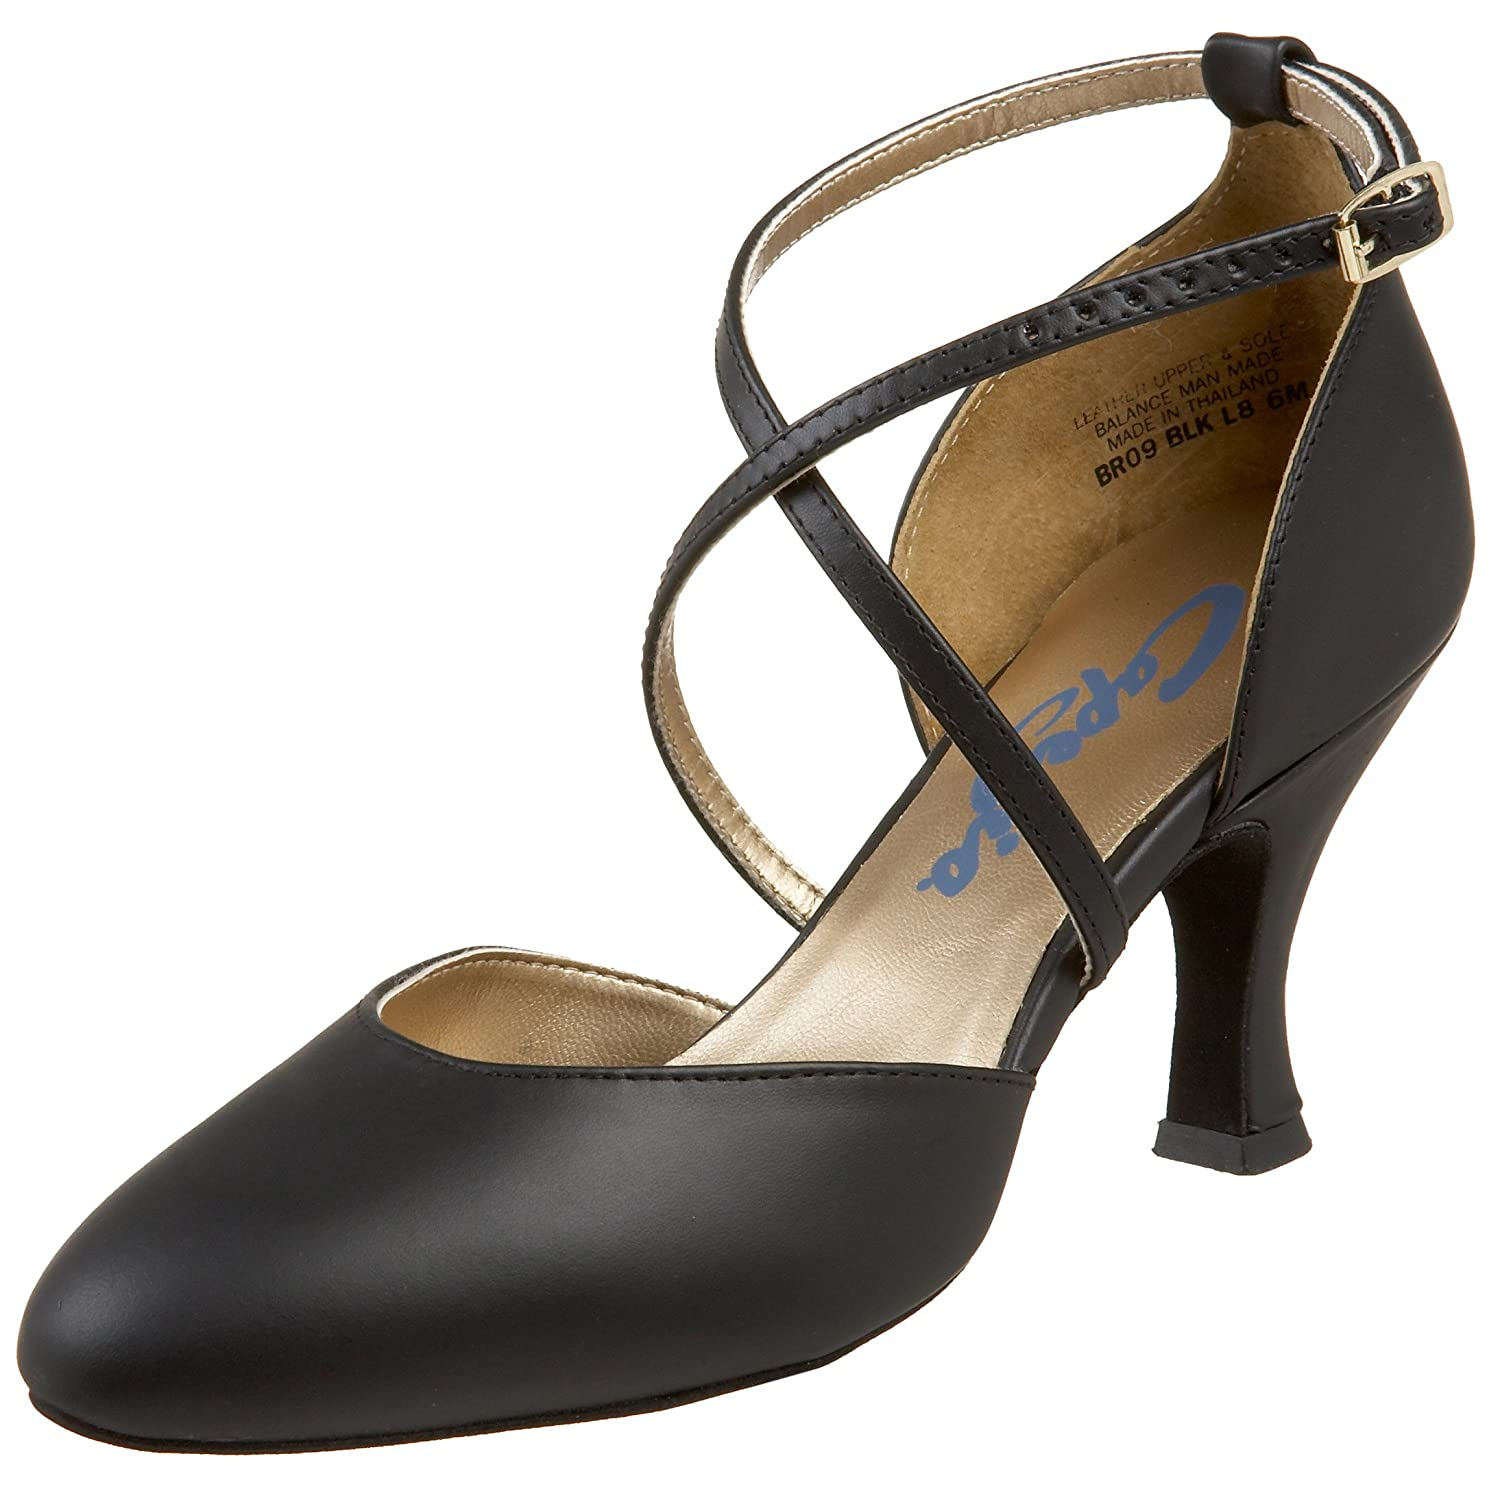 Swing Dance Shoes- Vintage, Lindy Hop, Tap, Ballroom Capezio Womens BR09 X-Strap 2.5 Flared Heel Shoe $79.99 AT vintagedancer.com